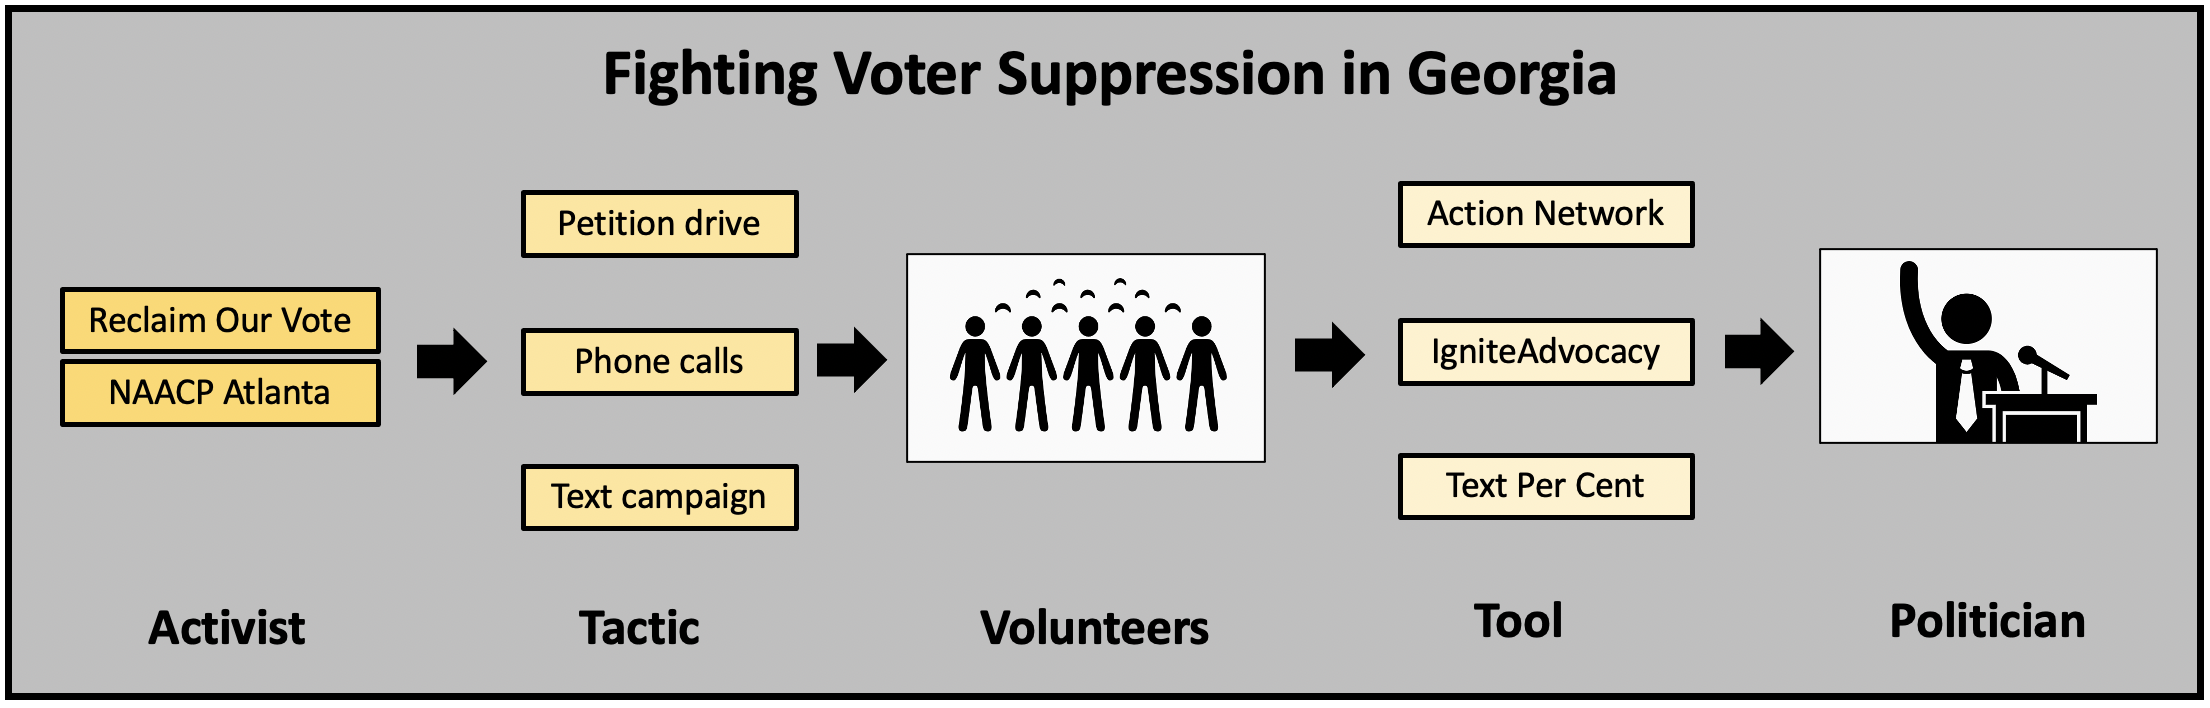 Activists mobilize outraged citizens to oppose new schemes to suppress voters in Georgia